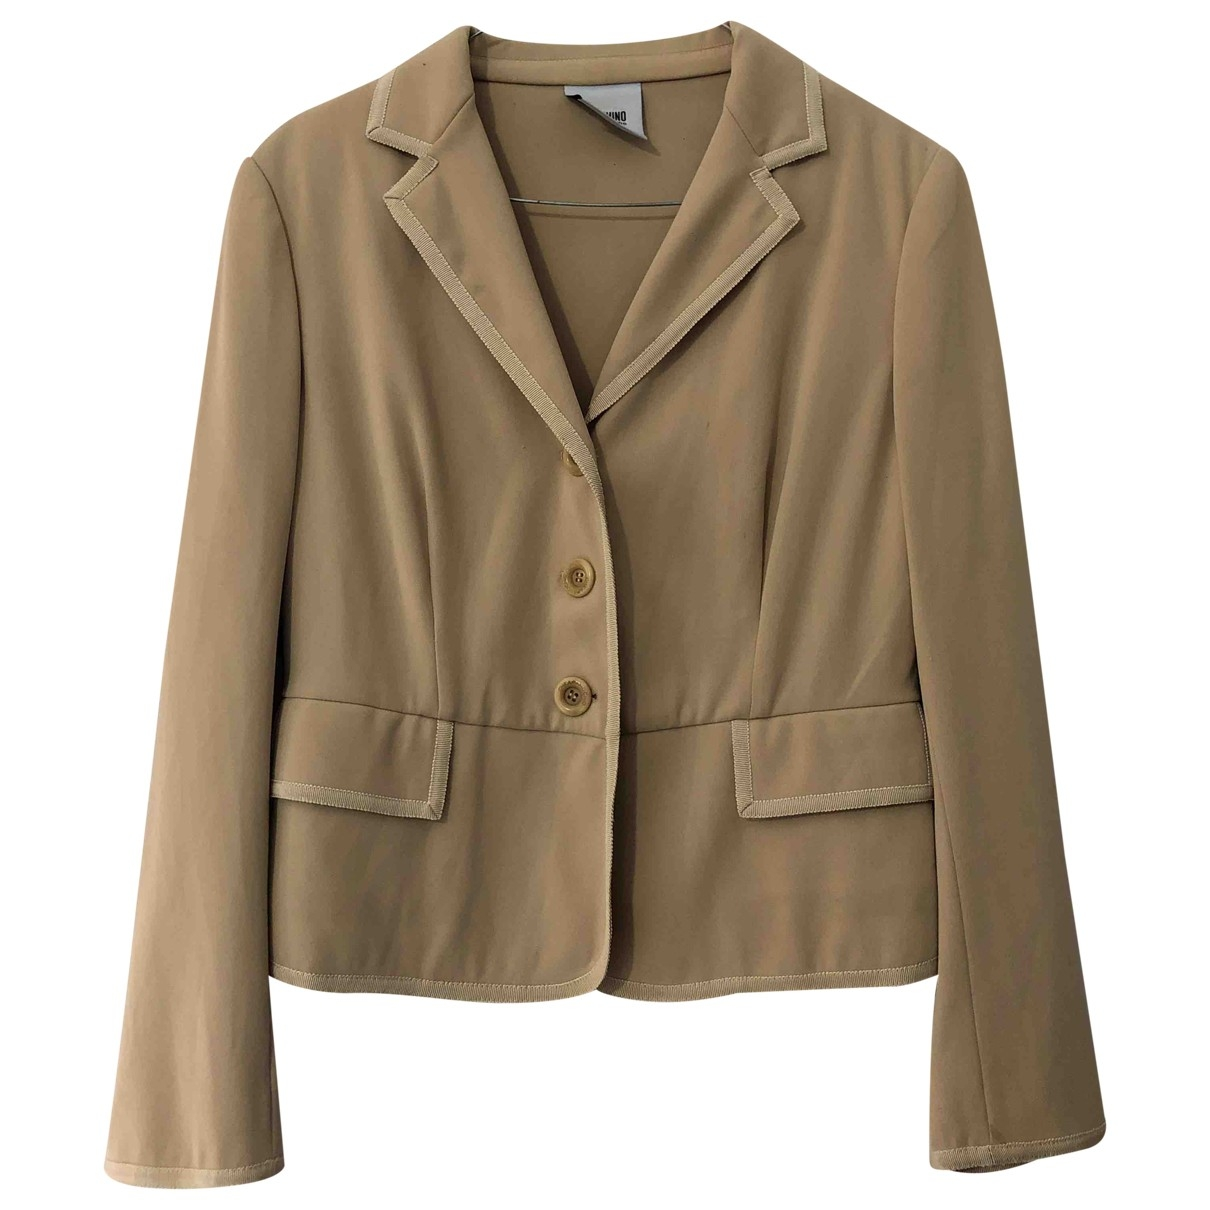 Moschino Cheap And Chic \N Beige jacket for Women 44 IT